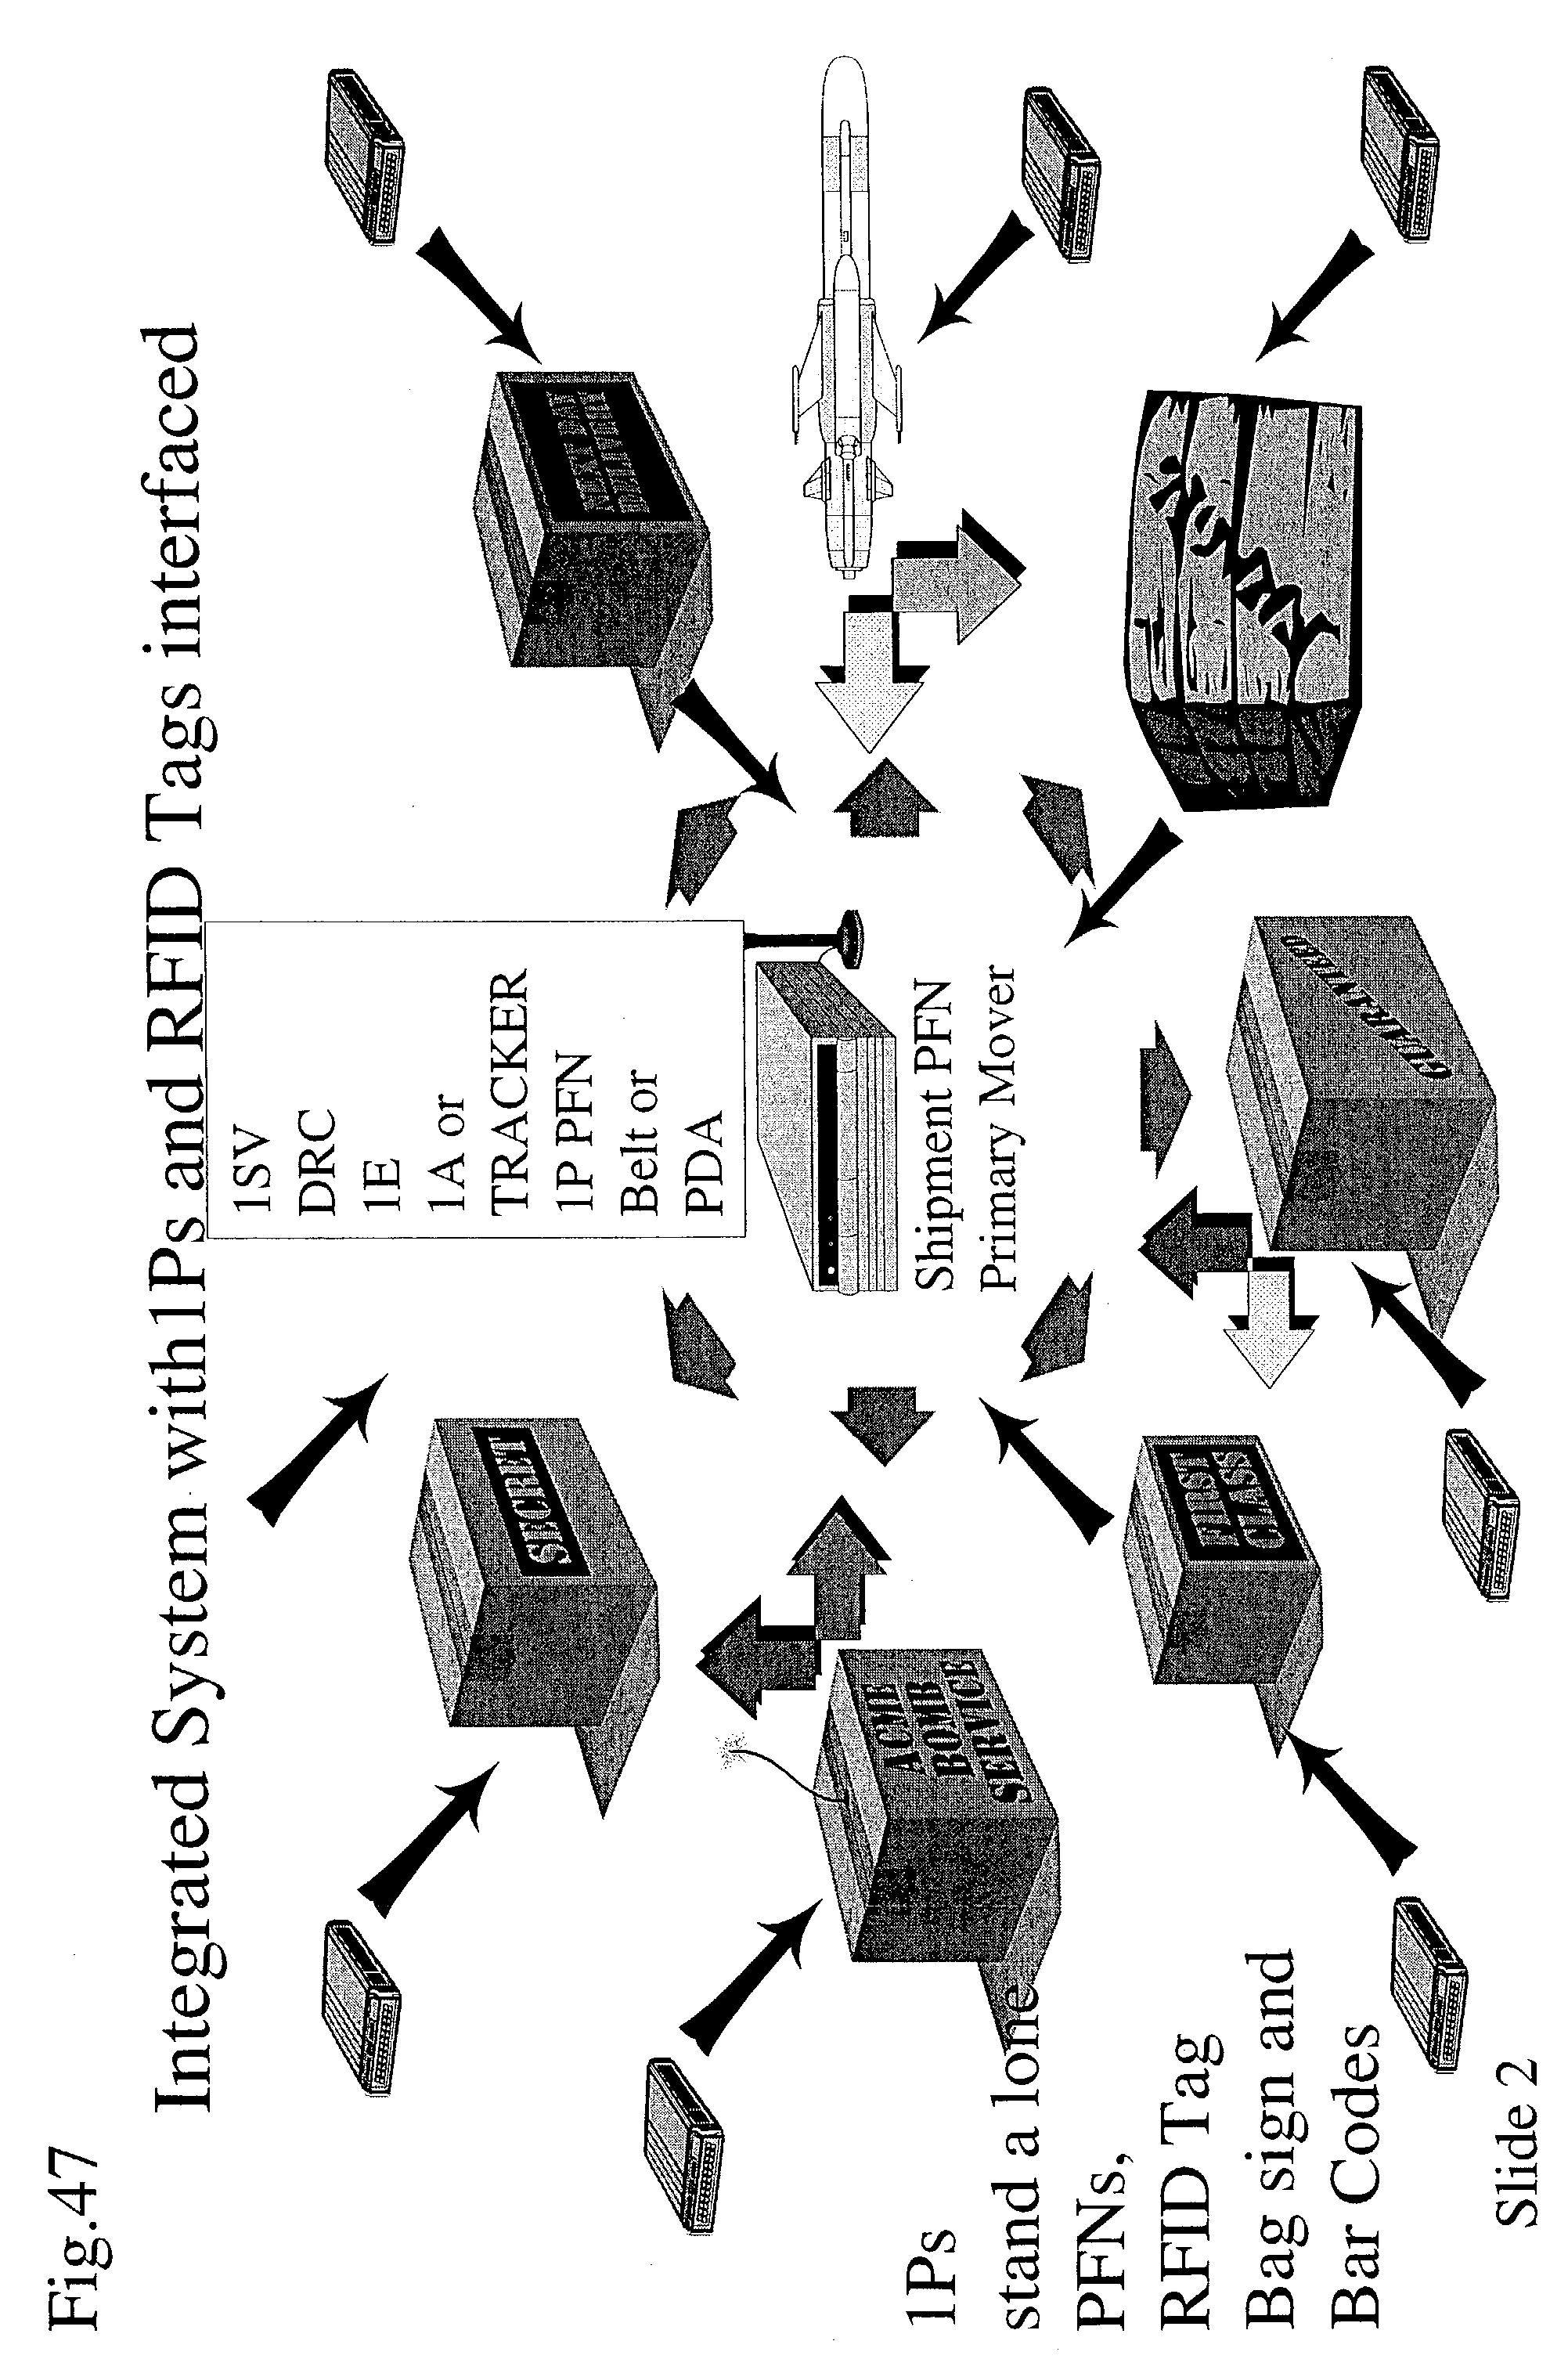 Patent Us 20030093187a1 Mower Deck Belt Diagram Group Picture Image By Tag 0 Petitions